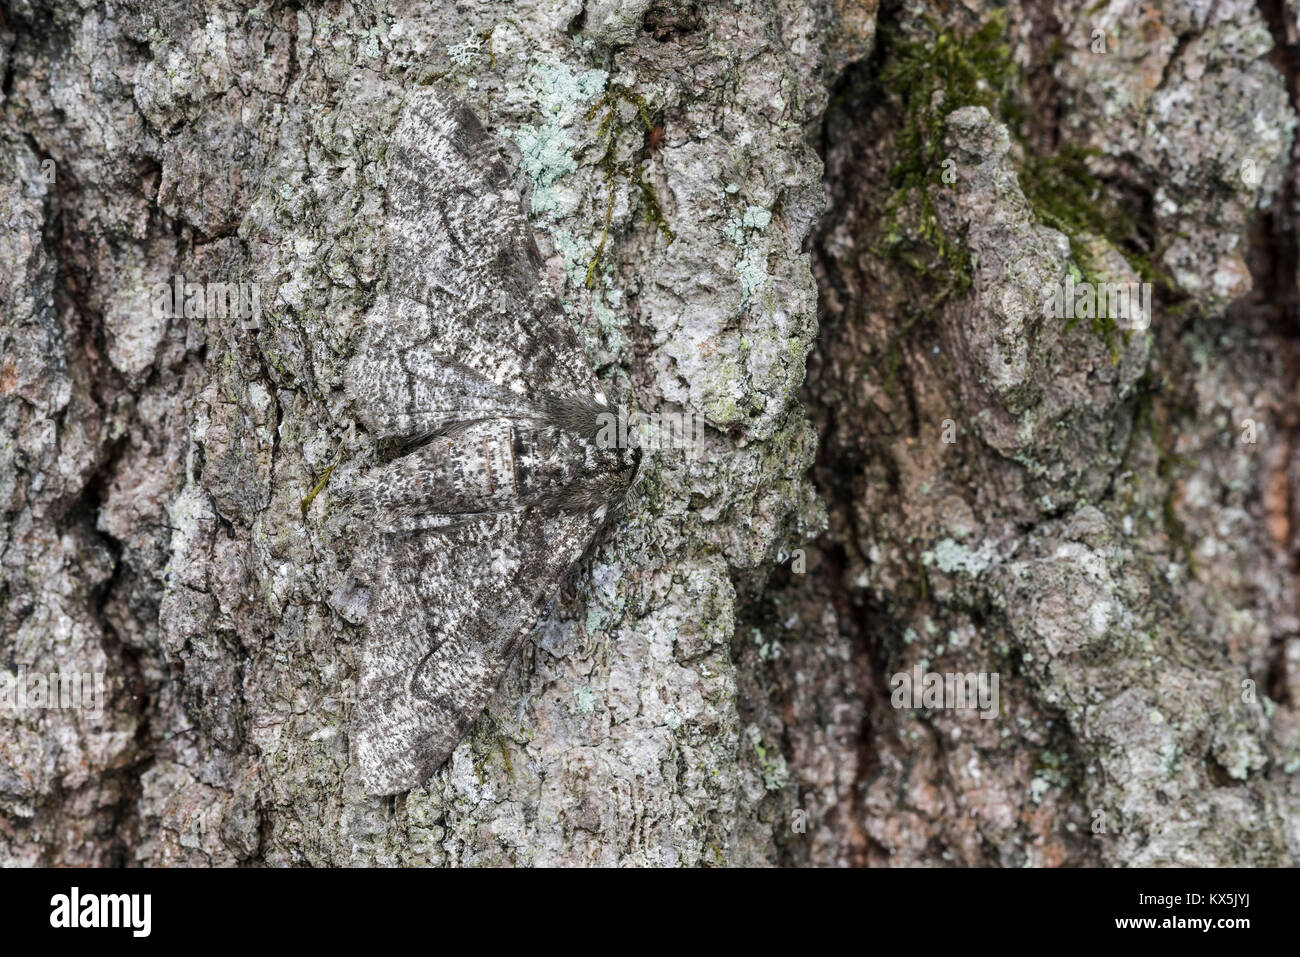 Pepper and Salt Geometer moth camouflaged on oak bark. Cove Mountain (TNC) Preserve, Perry County, Pennsylvania, - Stock Image